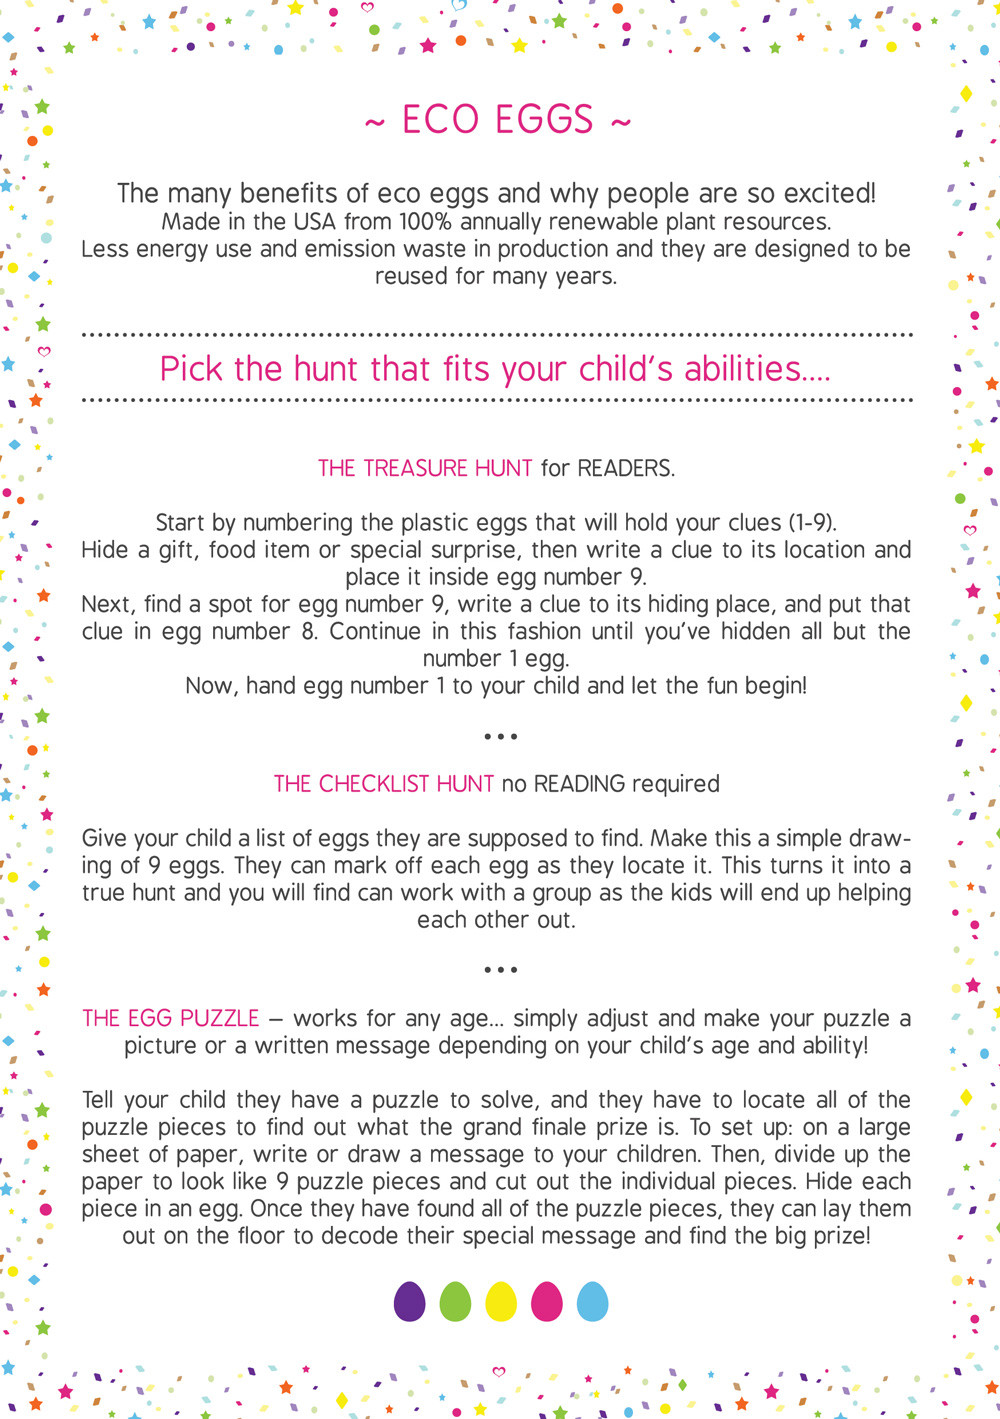 THB-Eco-Eggs-leaflet-A5-PREVIEW.jpg